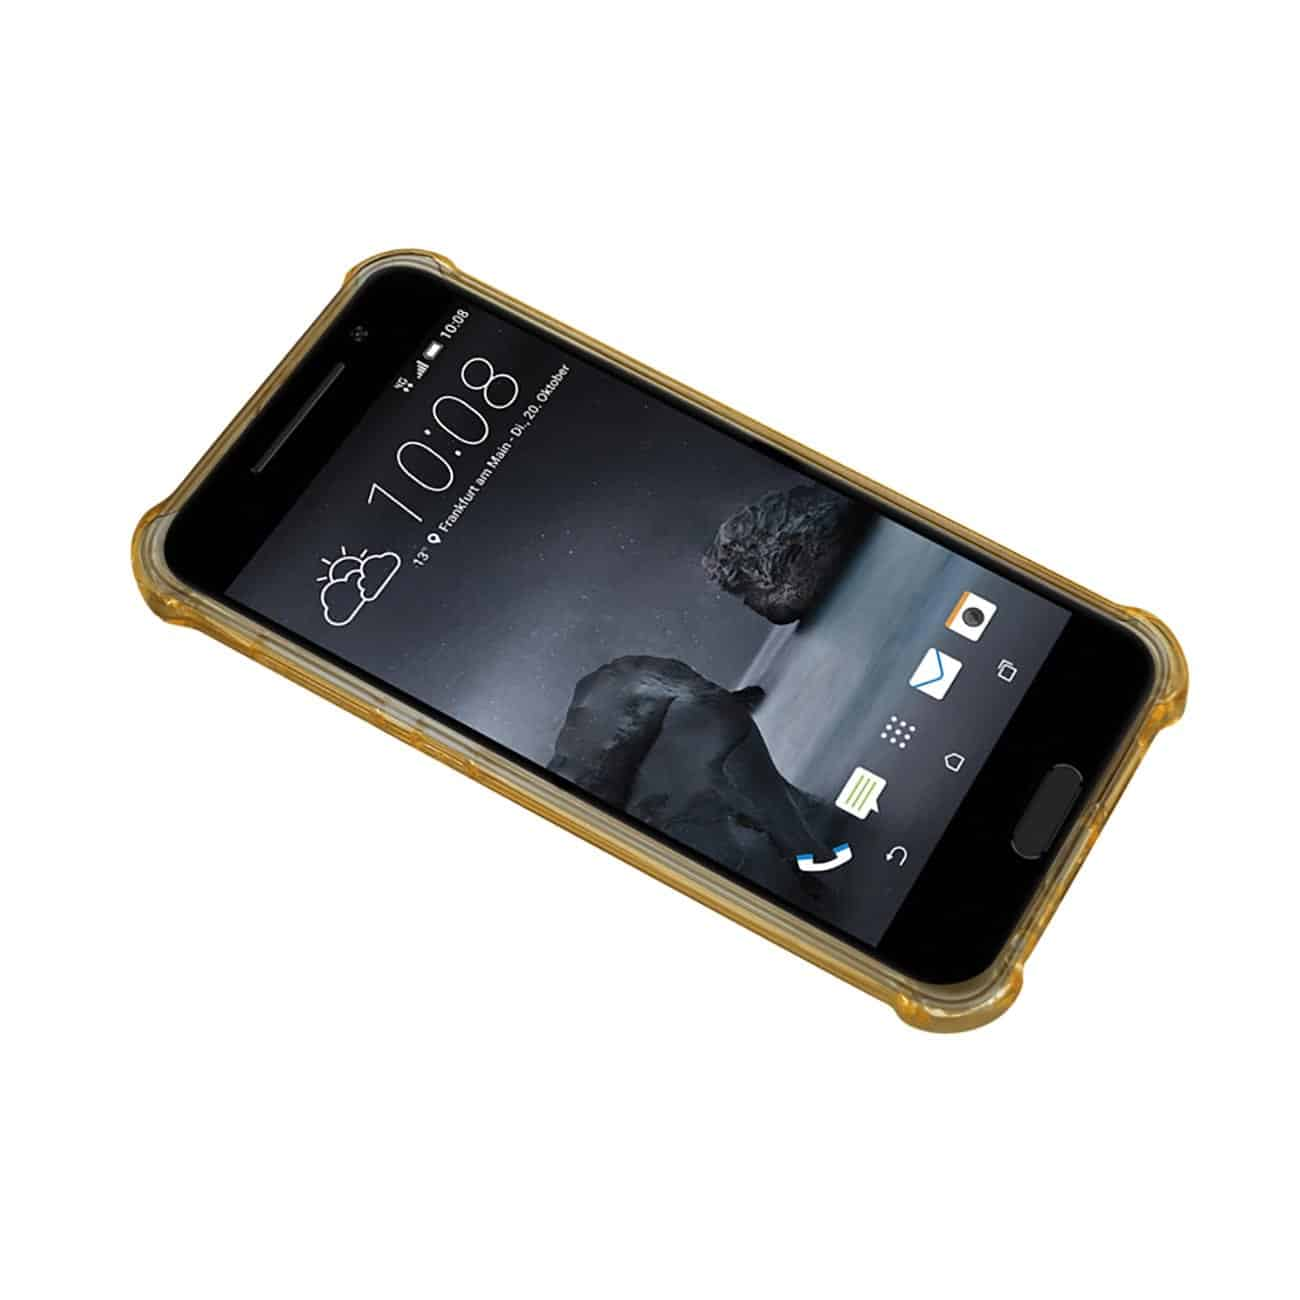 HTC ONE A9 MIRROR EFFECT CASE WITH AIR CUSHION PROTECTION IN CLEAR GOLD